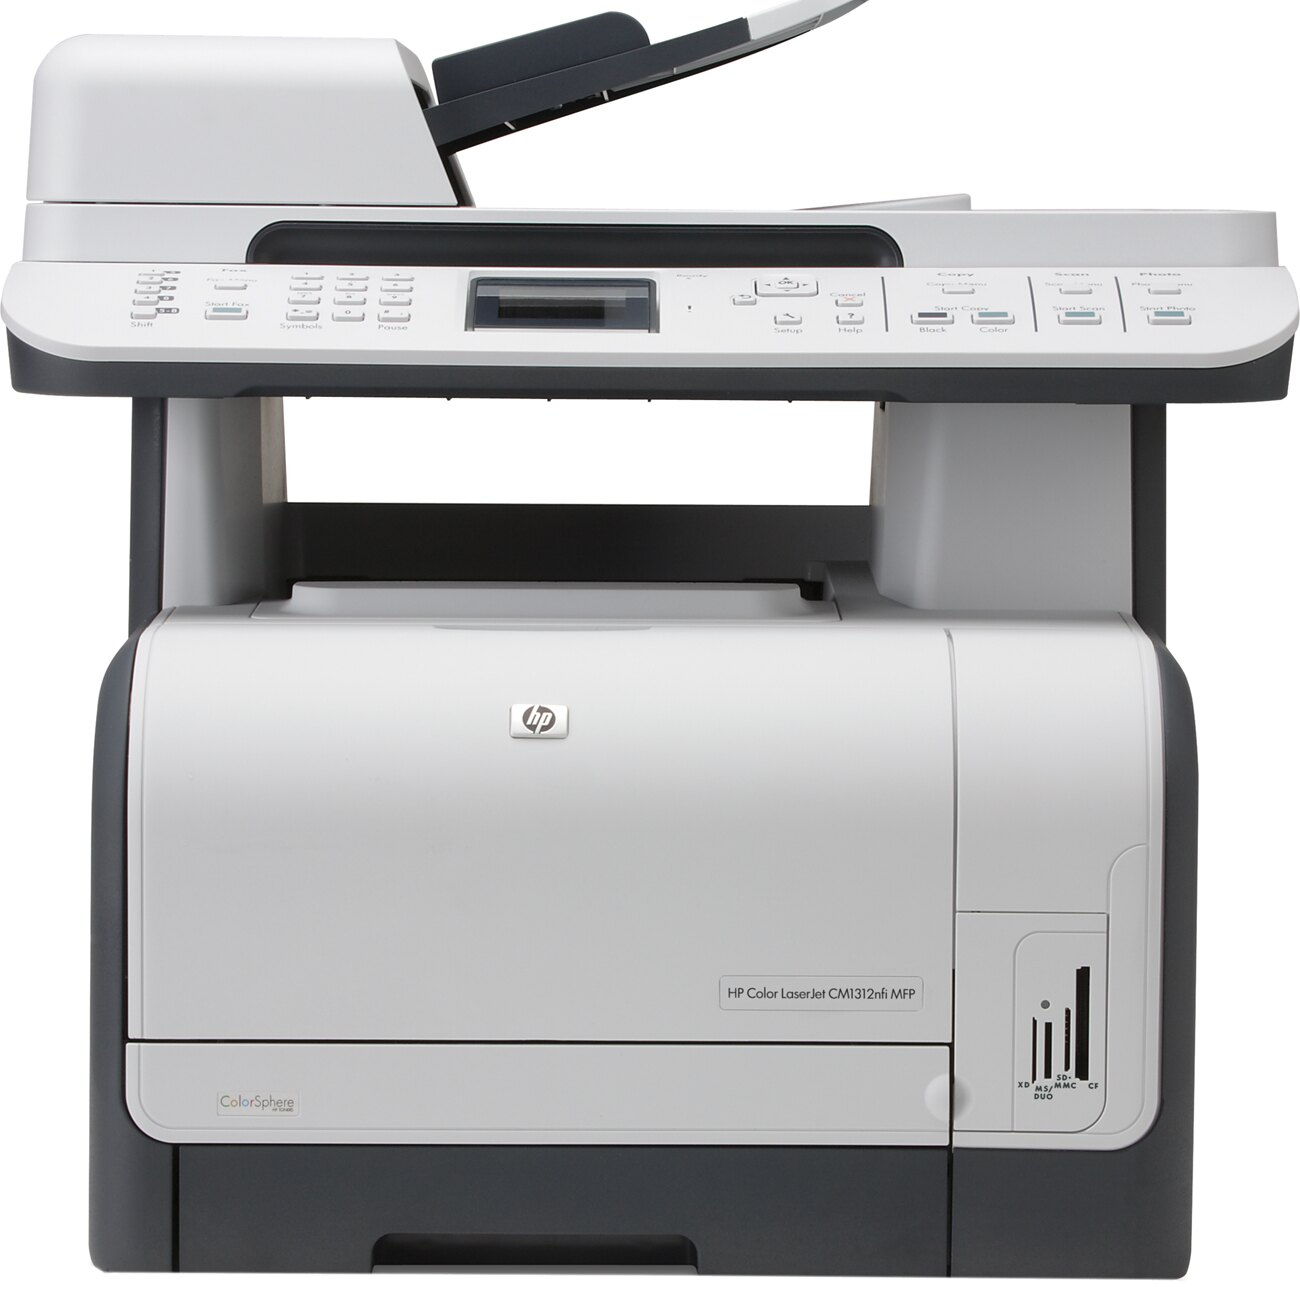 HP LaserJet CM1312NFI Multifunction Printer - 12 ppm Mono - 8 ppm Color - 600 x 600 dpi - Fax, Copier, Scanner, Printer 0